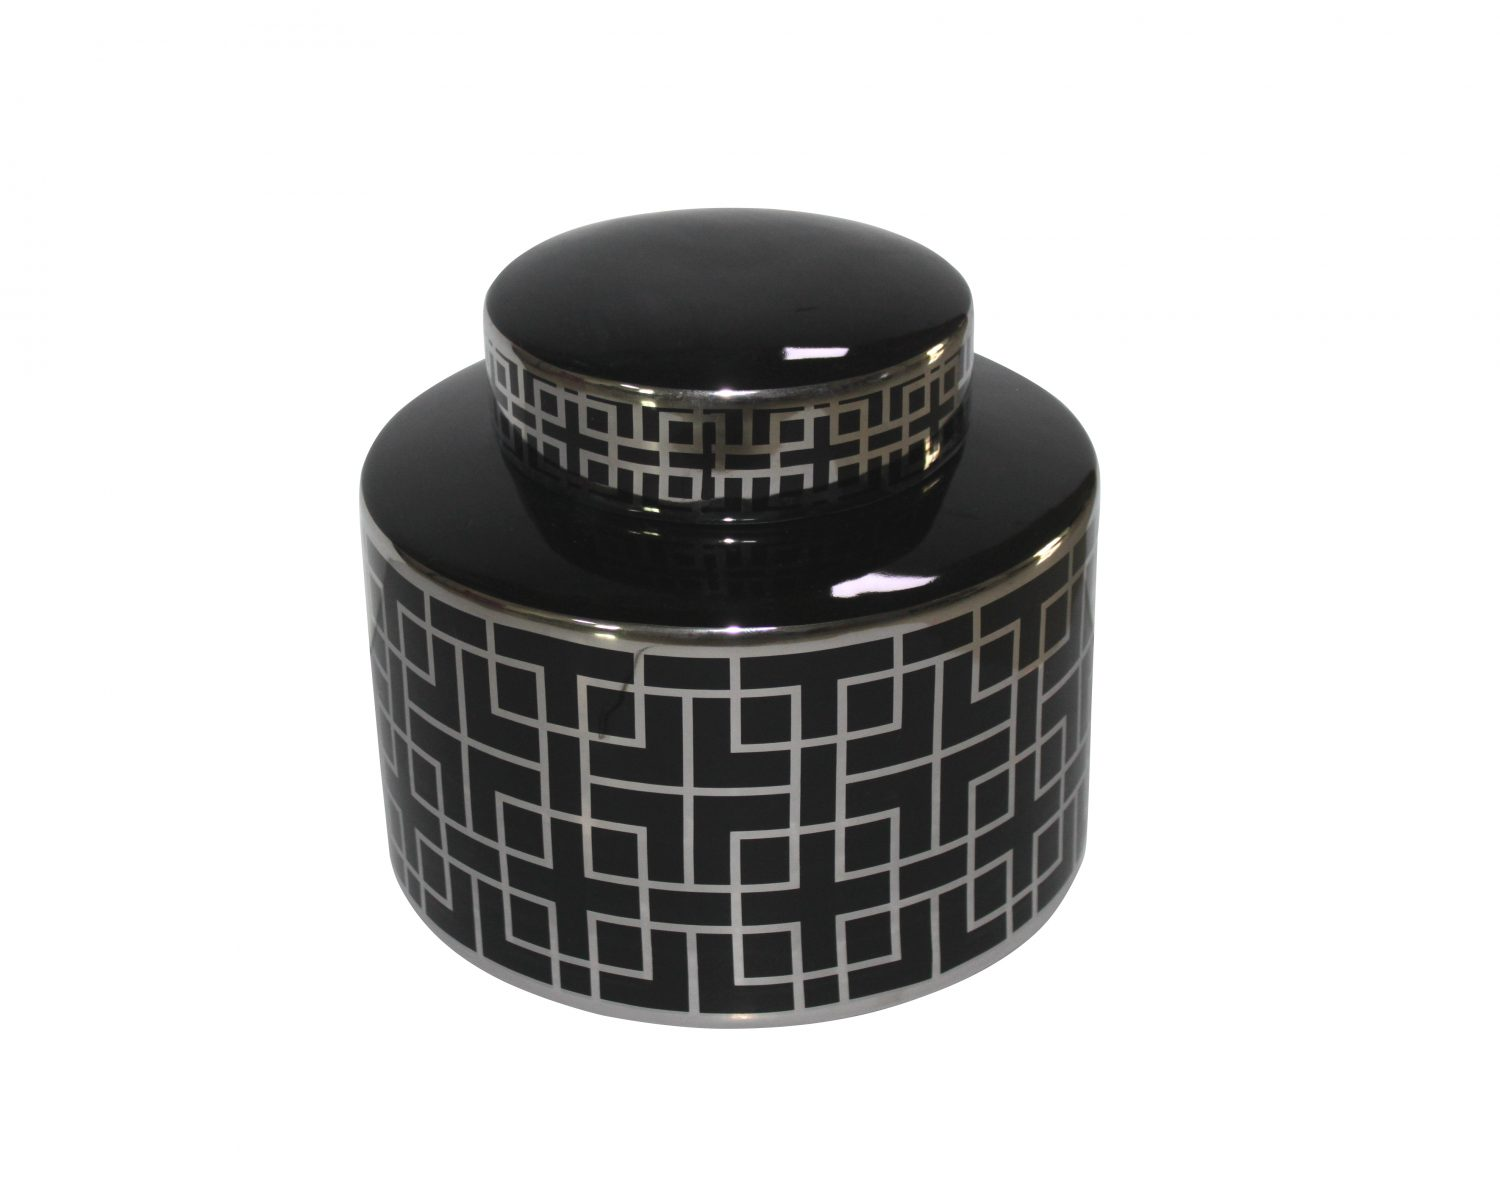 Liang & Eimil Silver and Black Jar